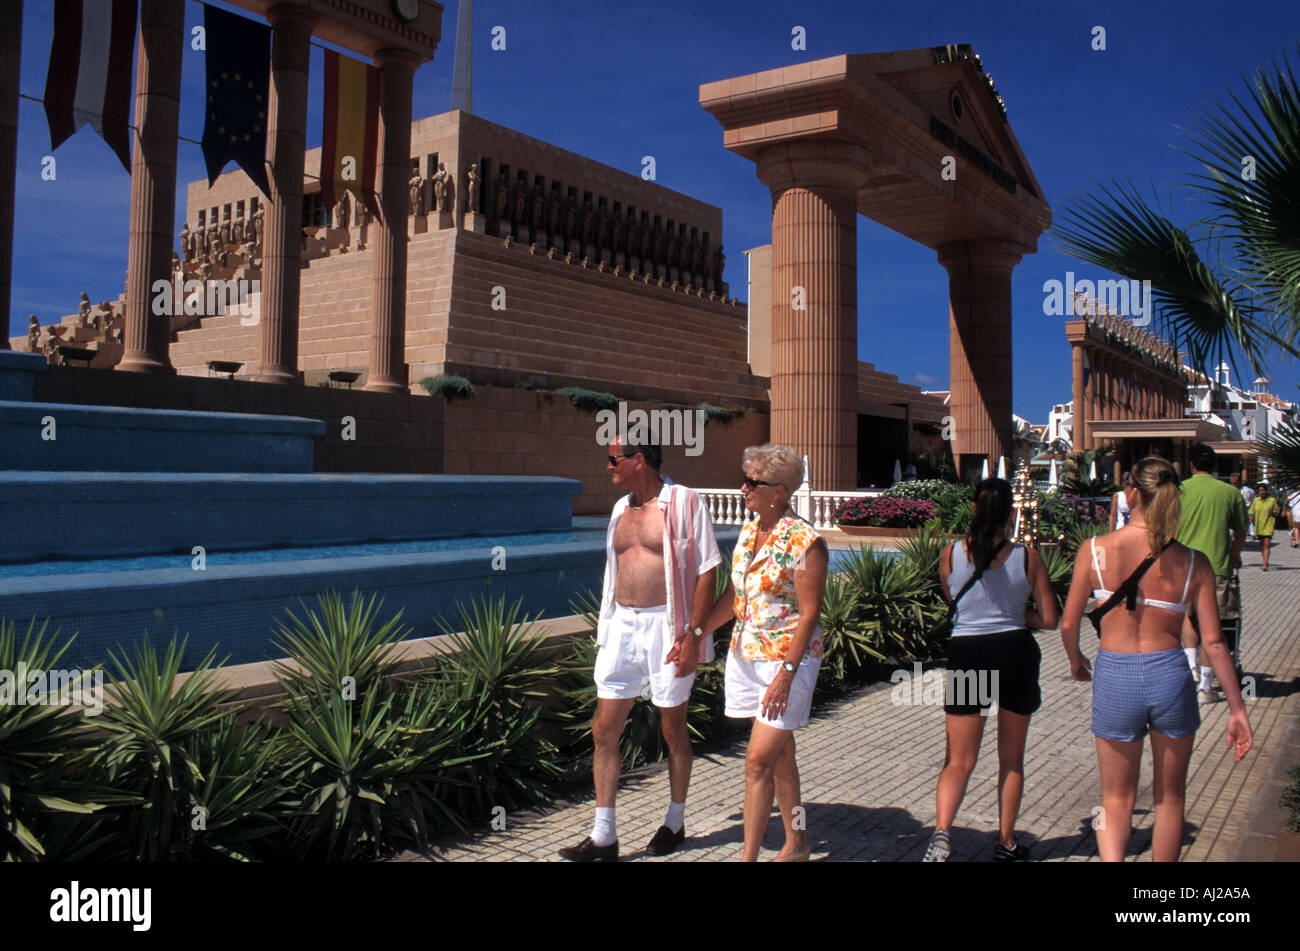 British holidaymakers outside hotel with Roman style pillars at ...